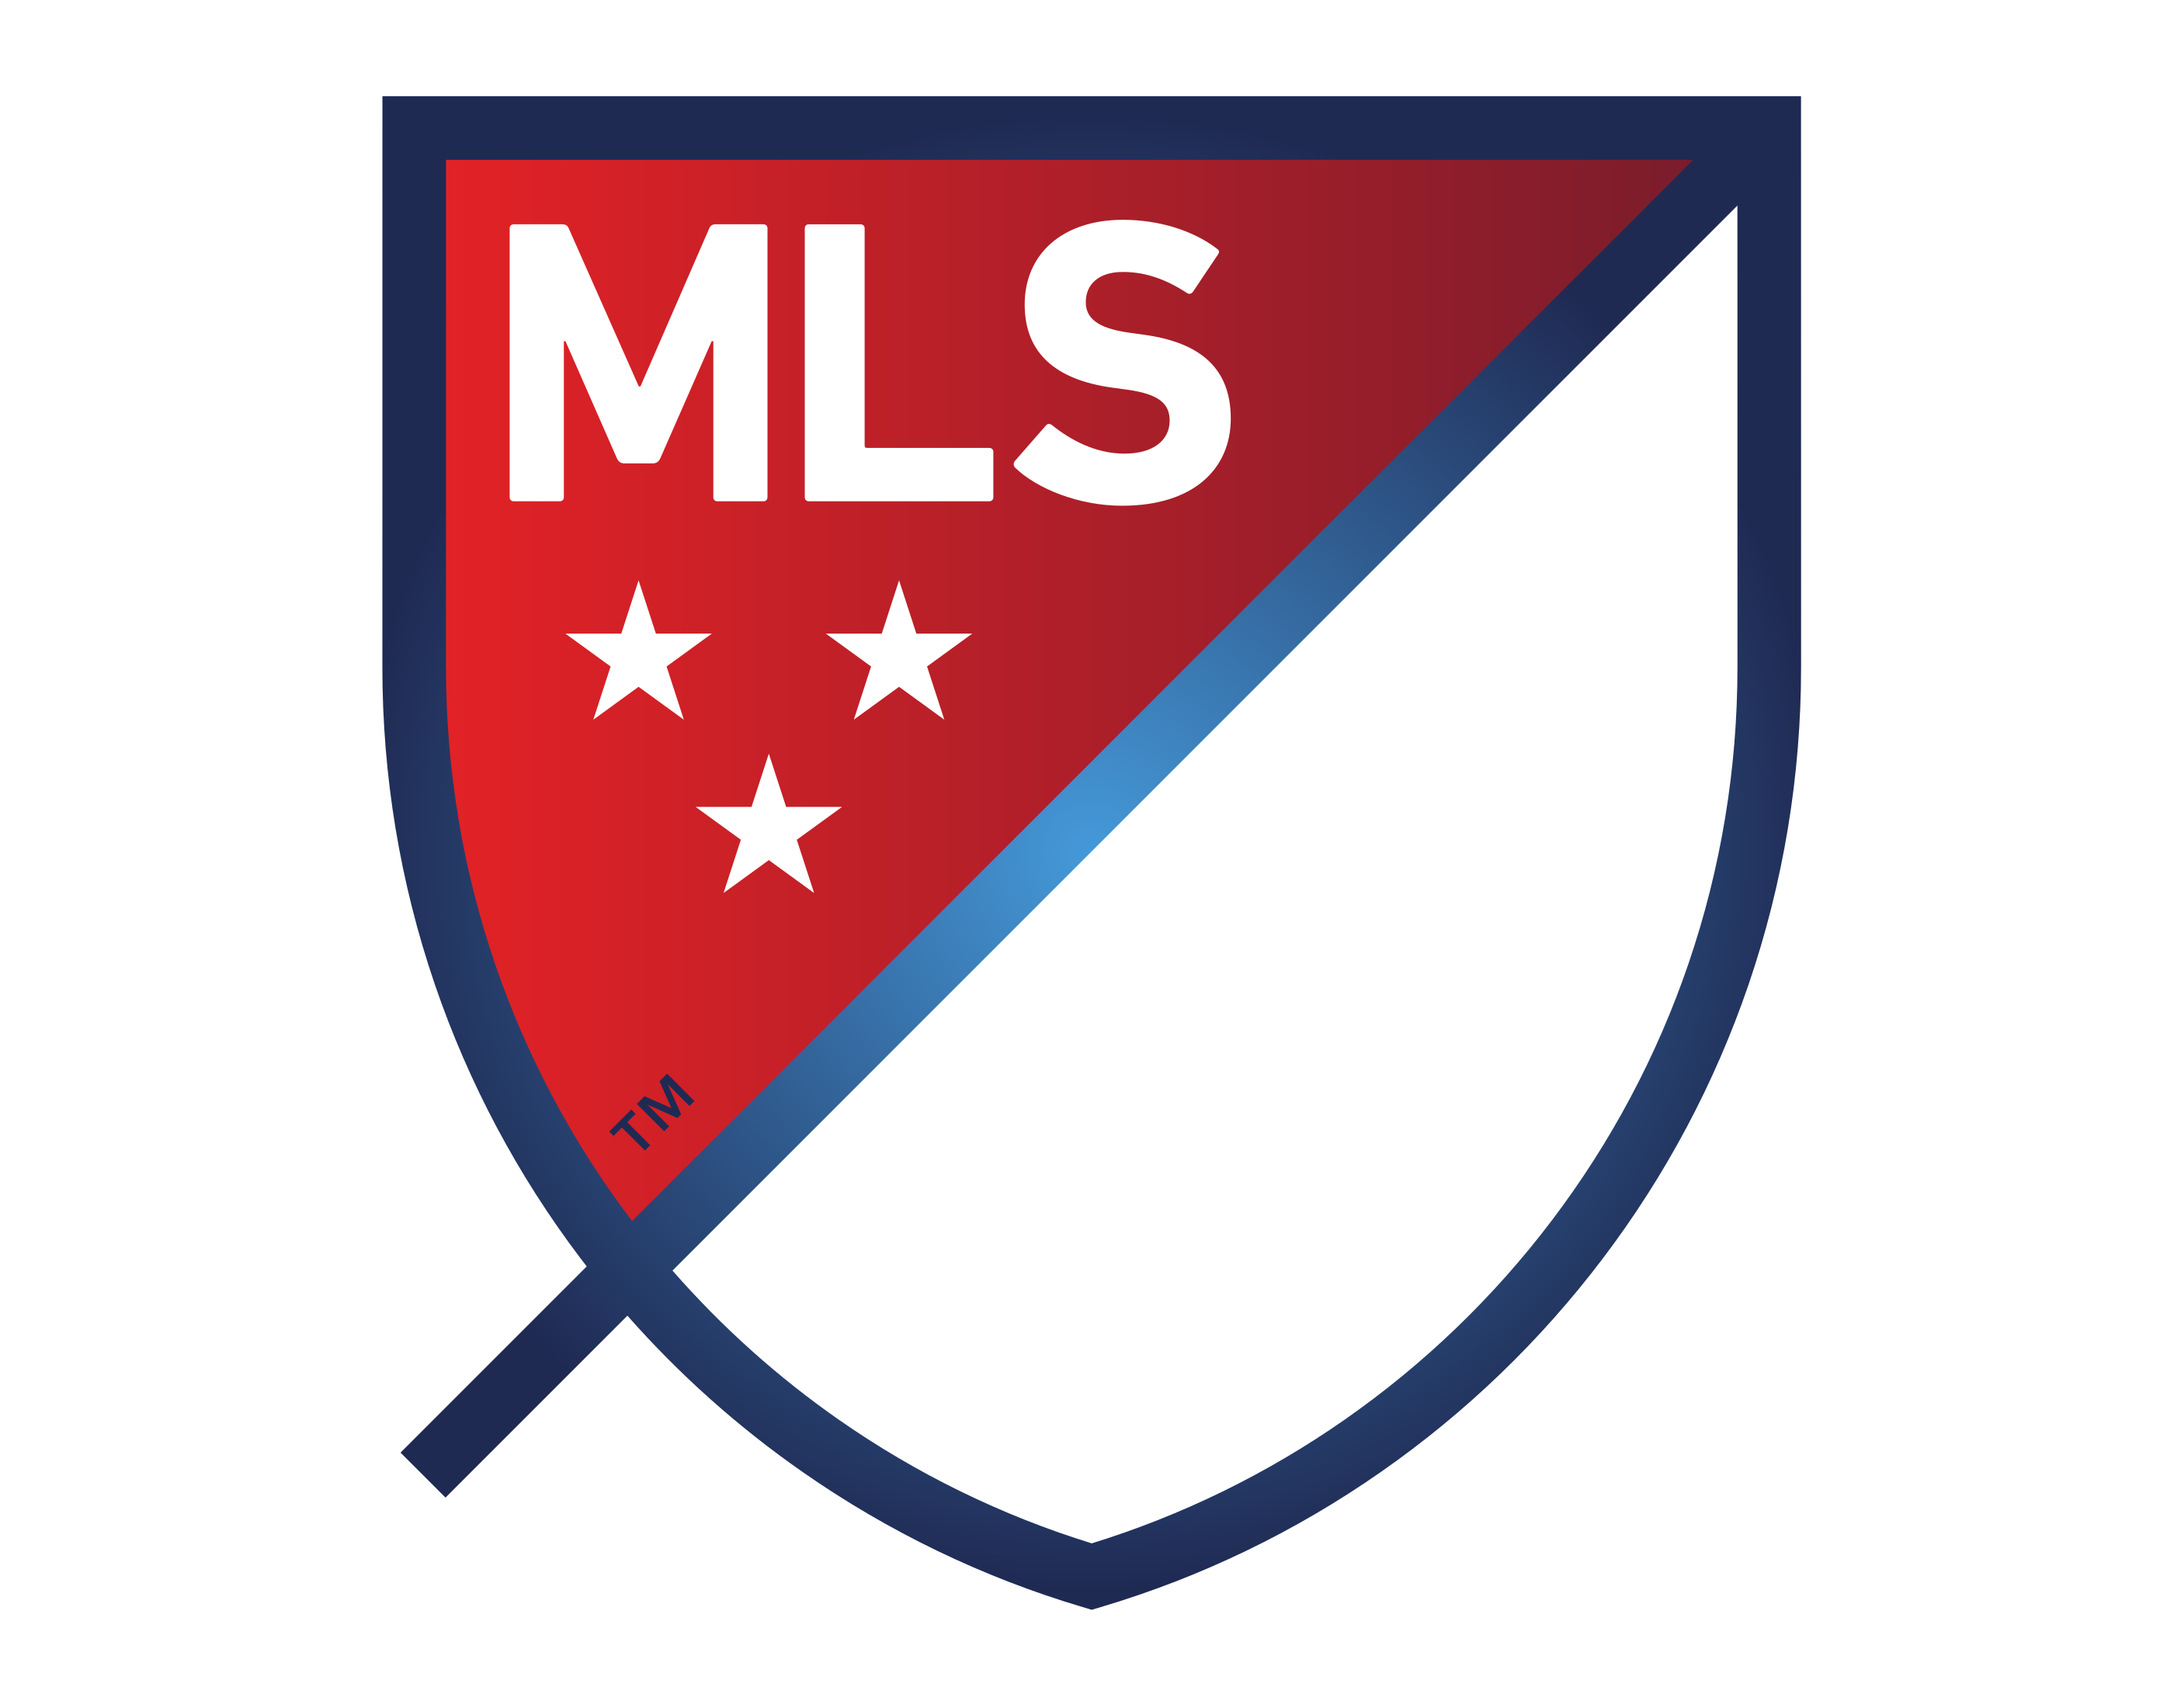 Mls logo mls symbol meaning history and evolution mls logo buycottarizona Image collections